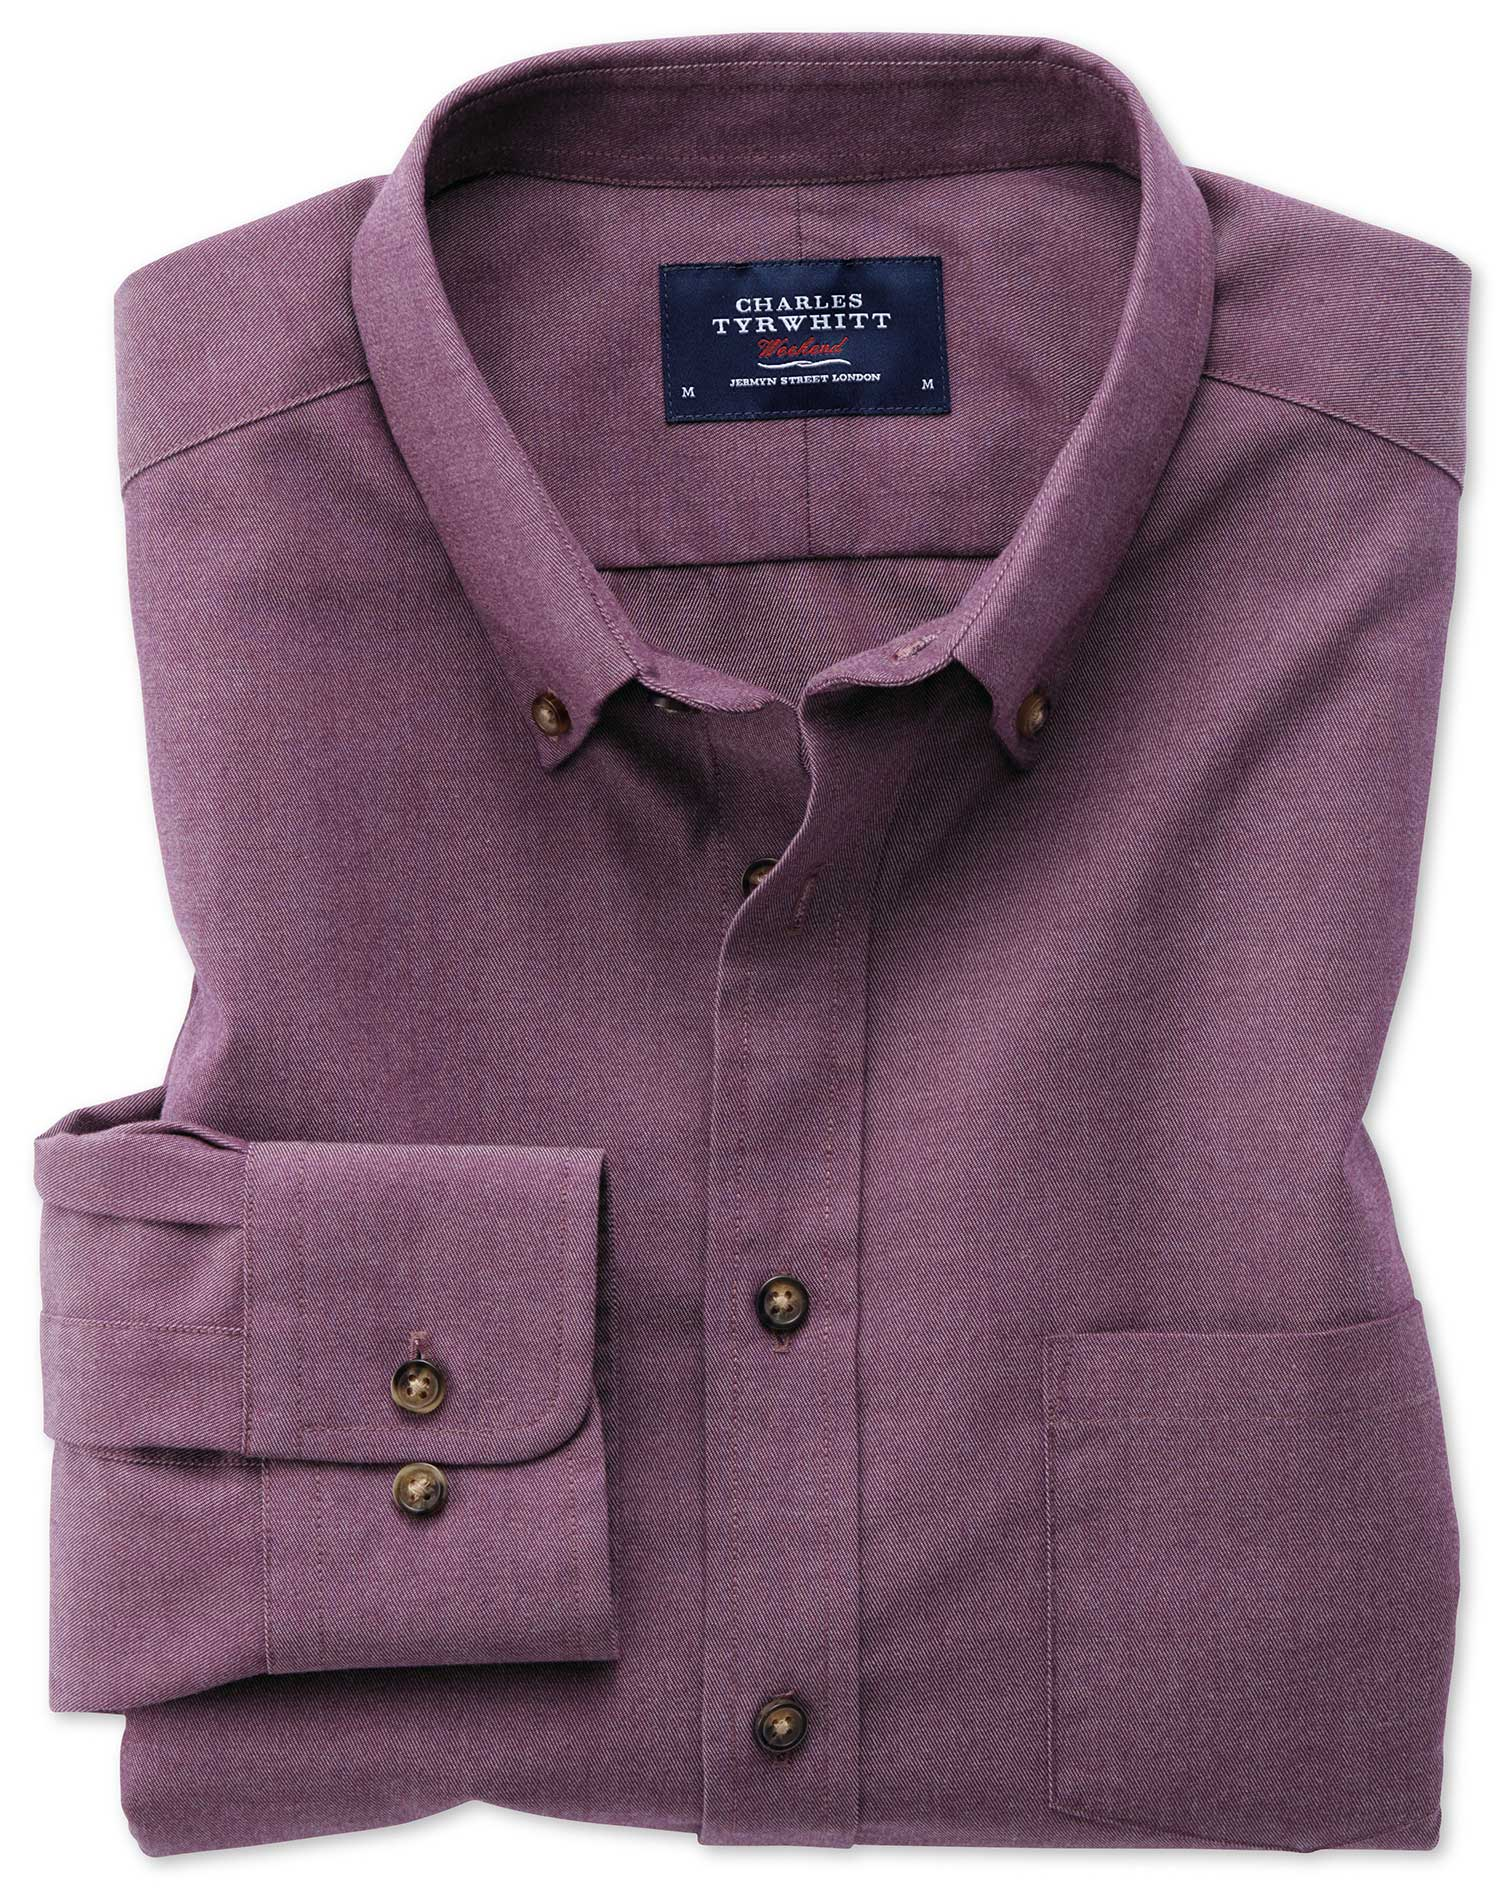 Classic Fit Button-Down Non-Iron Twill Purple Cotton Shirt Single Cuff Size Medium by Charles Tyrwhi